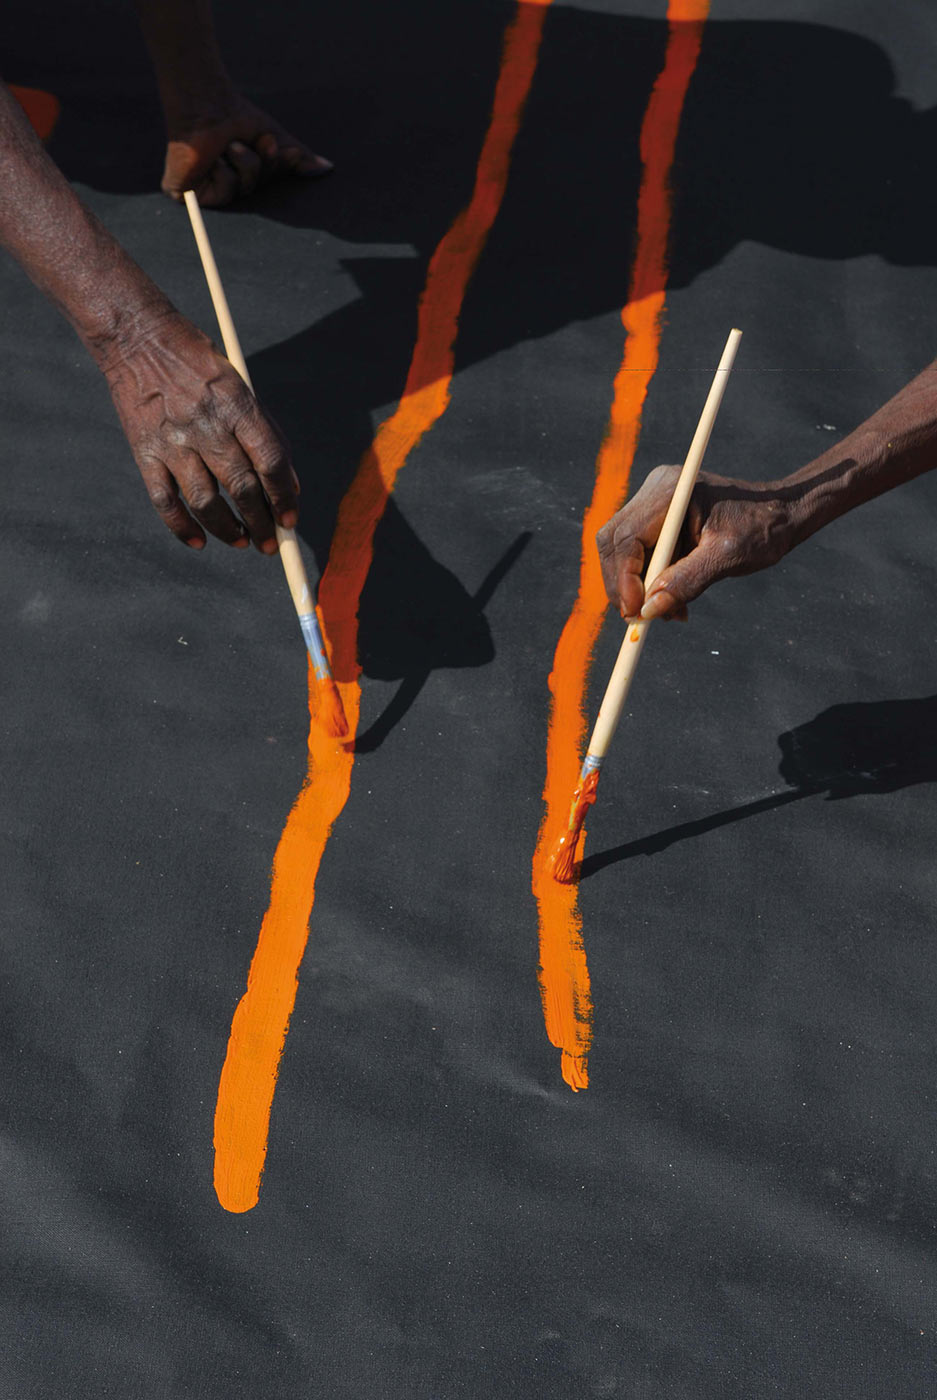 Colour photo of two hands painting orange pigment with onto a canvas. - click to view larger image